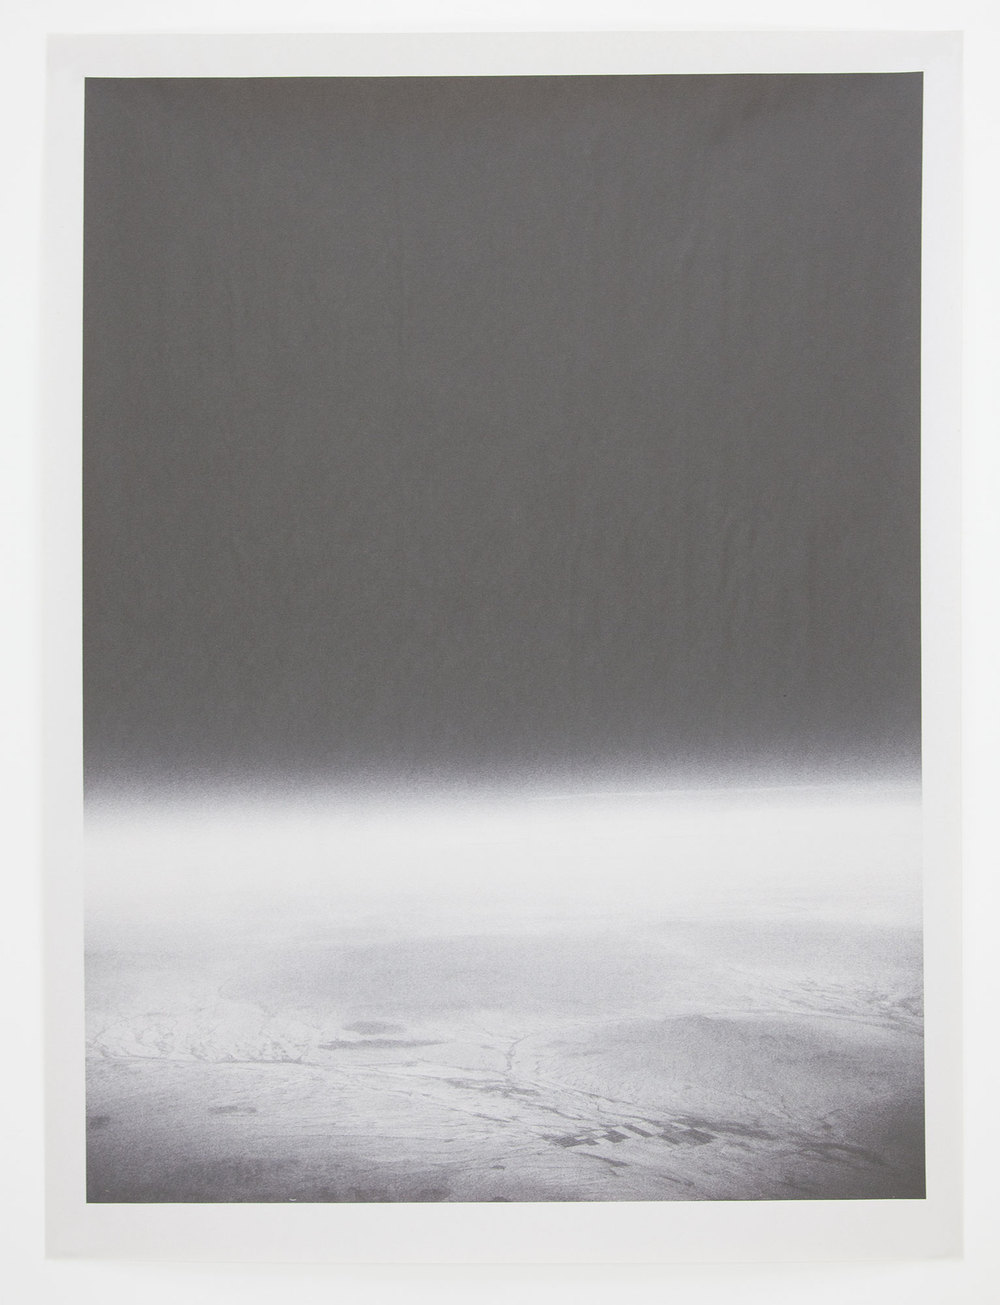 AZ_1166 , unique pigment print on newsprint, 18 x 24 inches, 2015